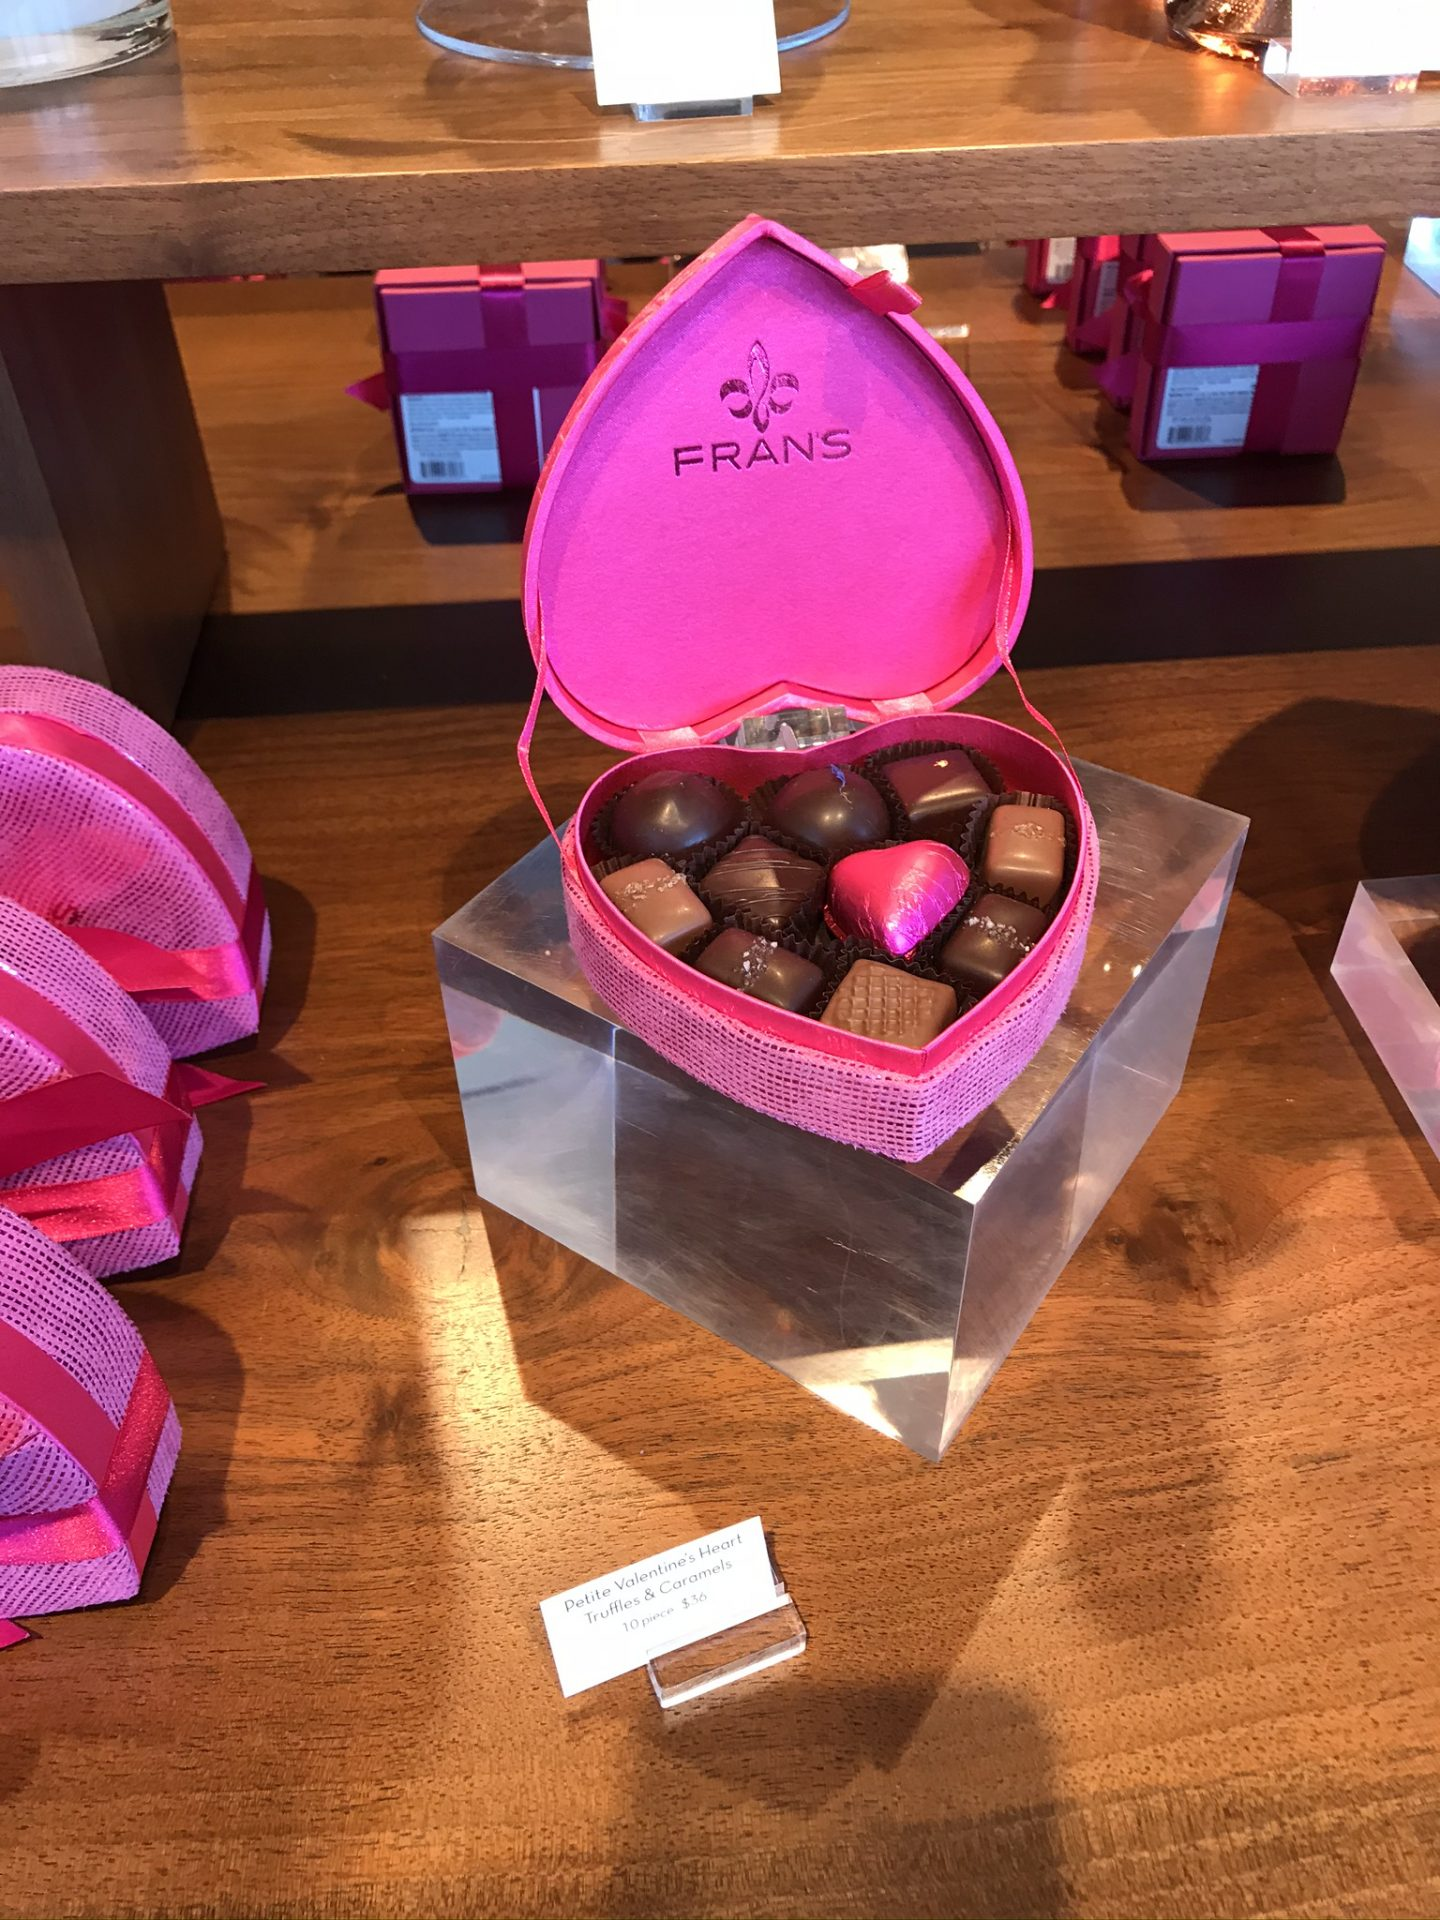 seattle chocolate, seattle gifts, candy gifts, gourmet chocolate, valentines gifts